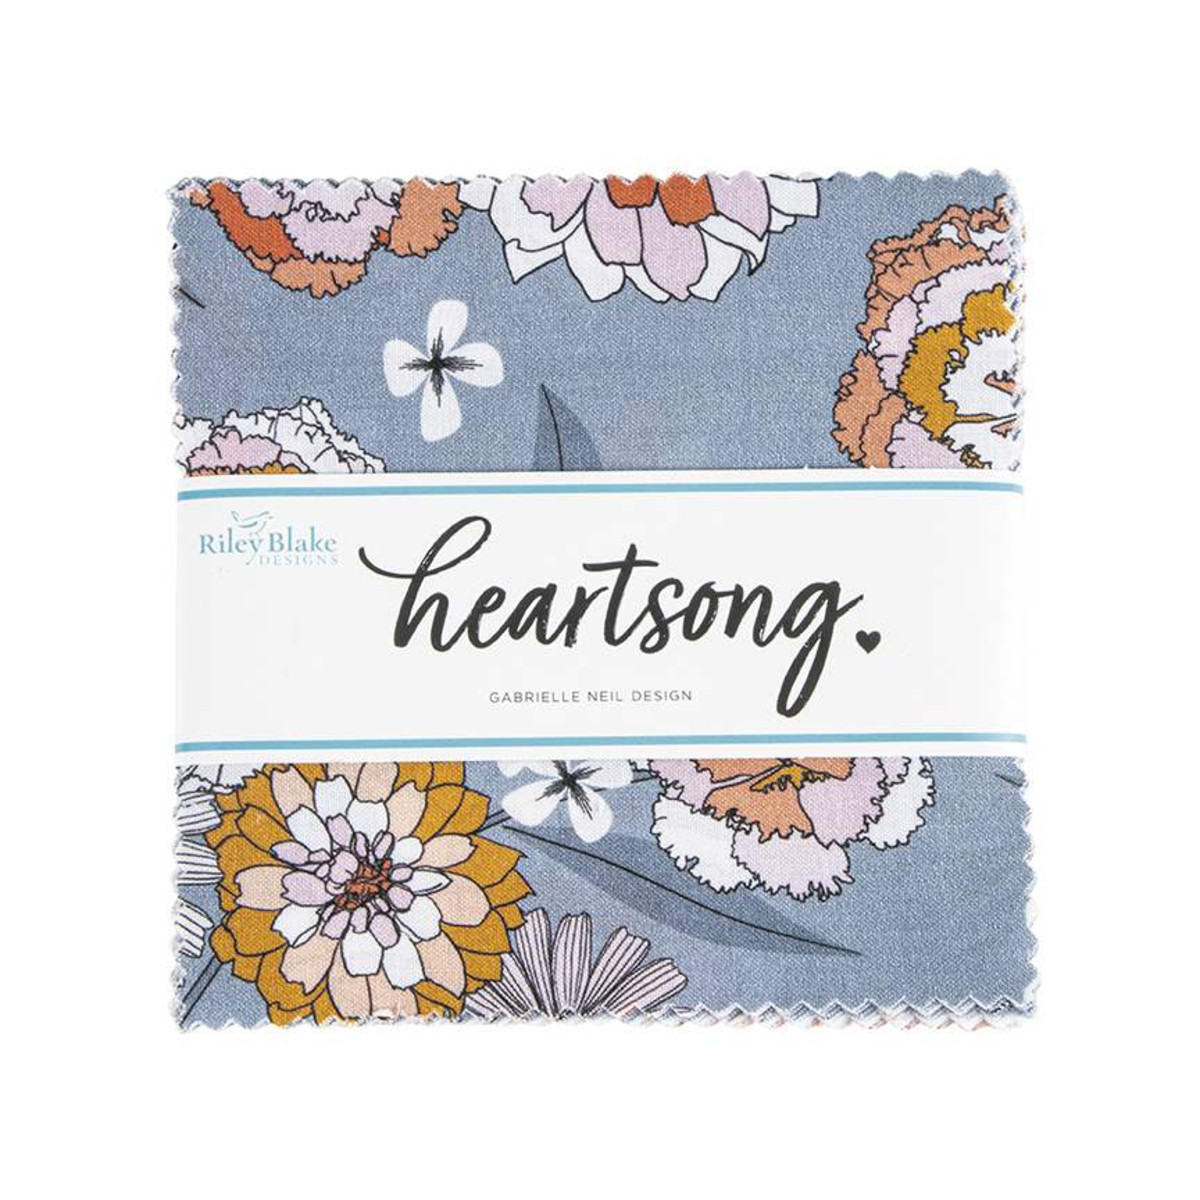 Riley Blake Charm Pack - Heartsong by Gabrielle Neil Design